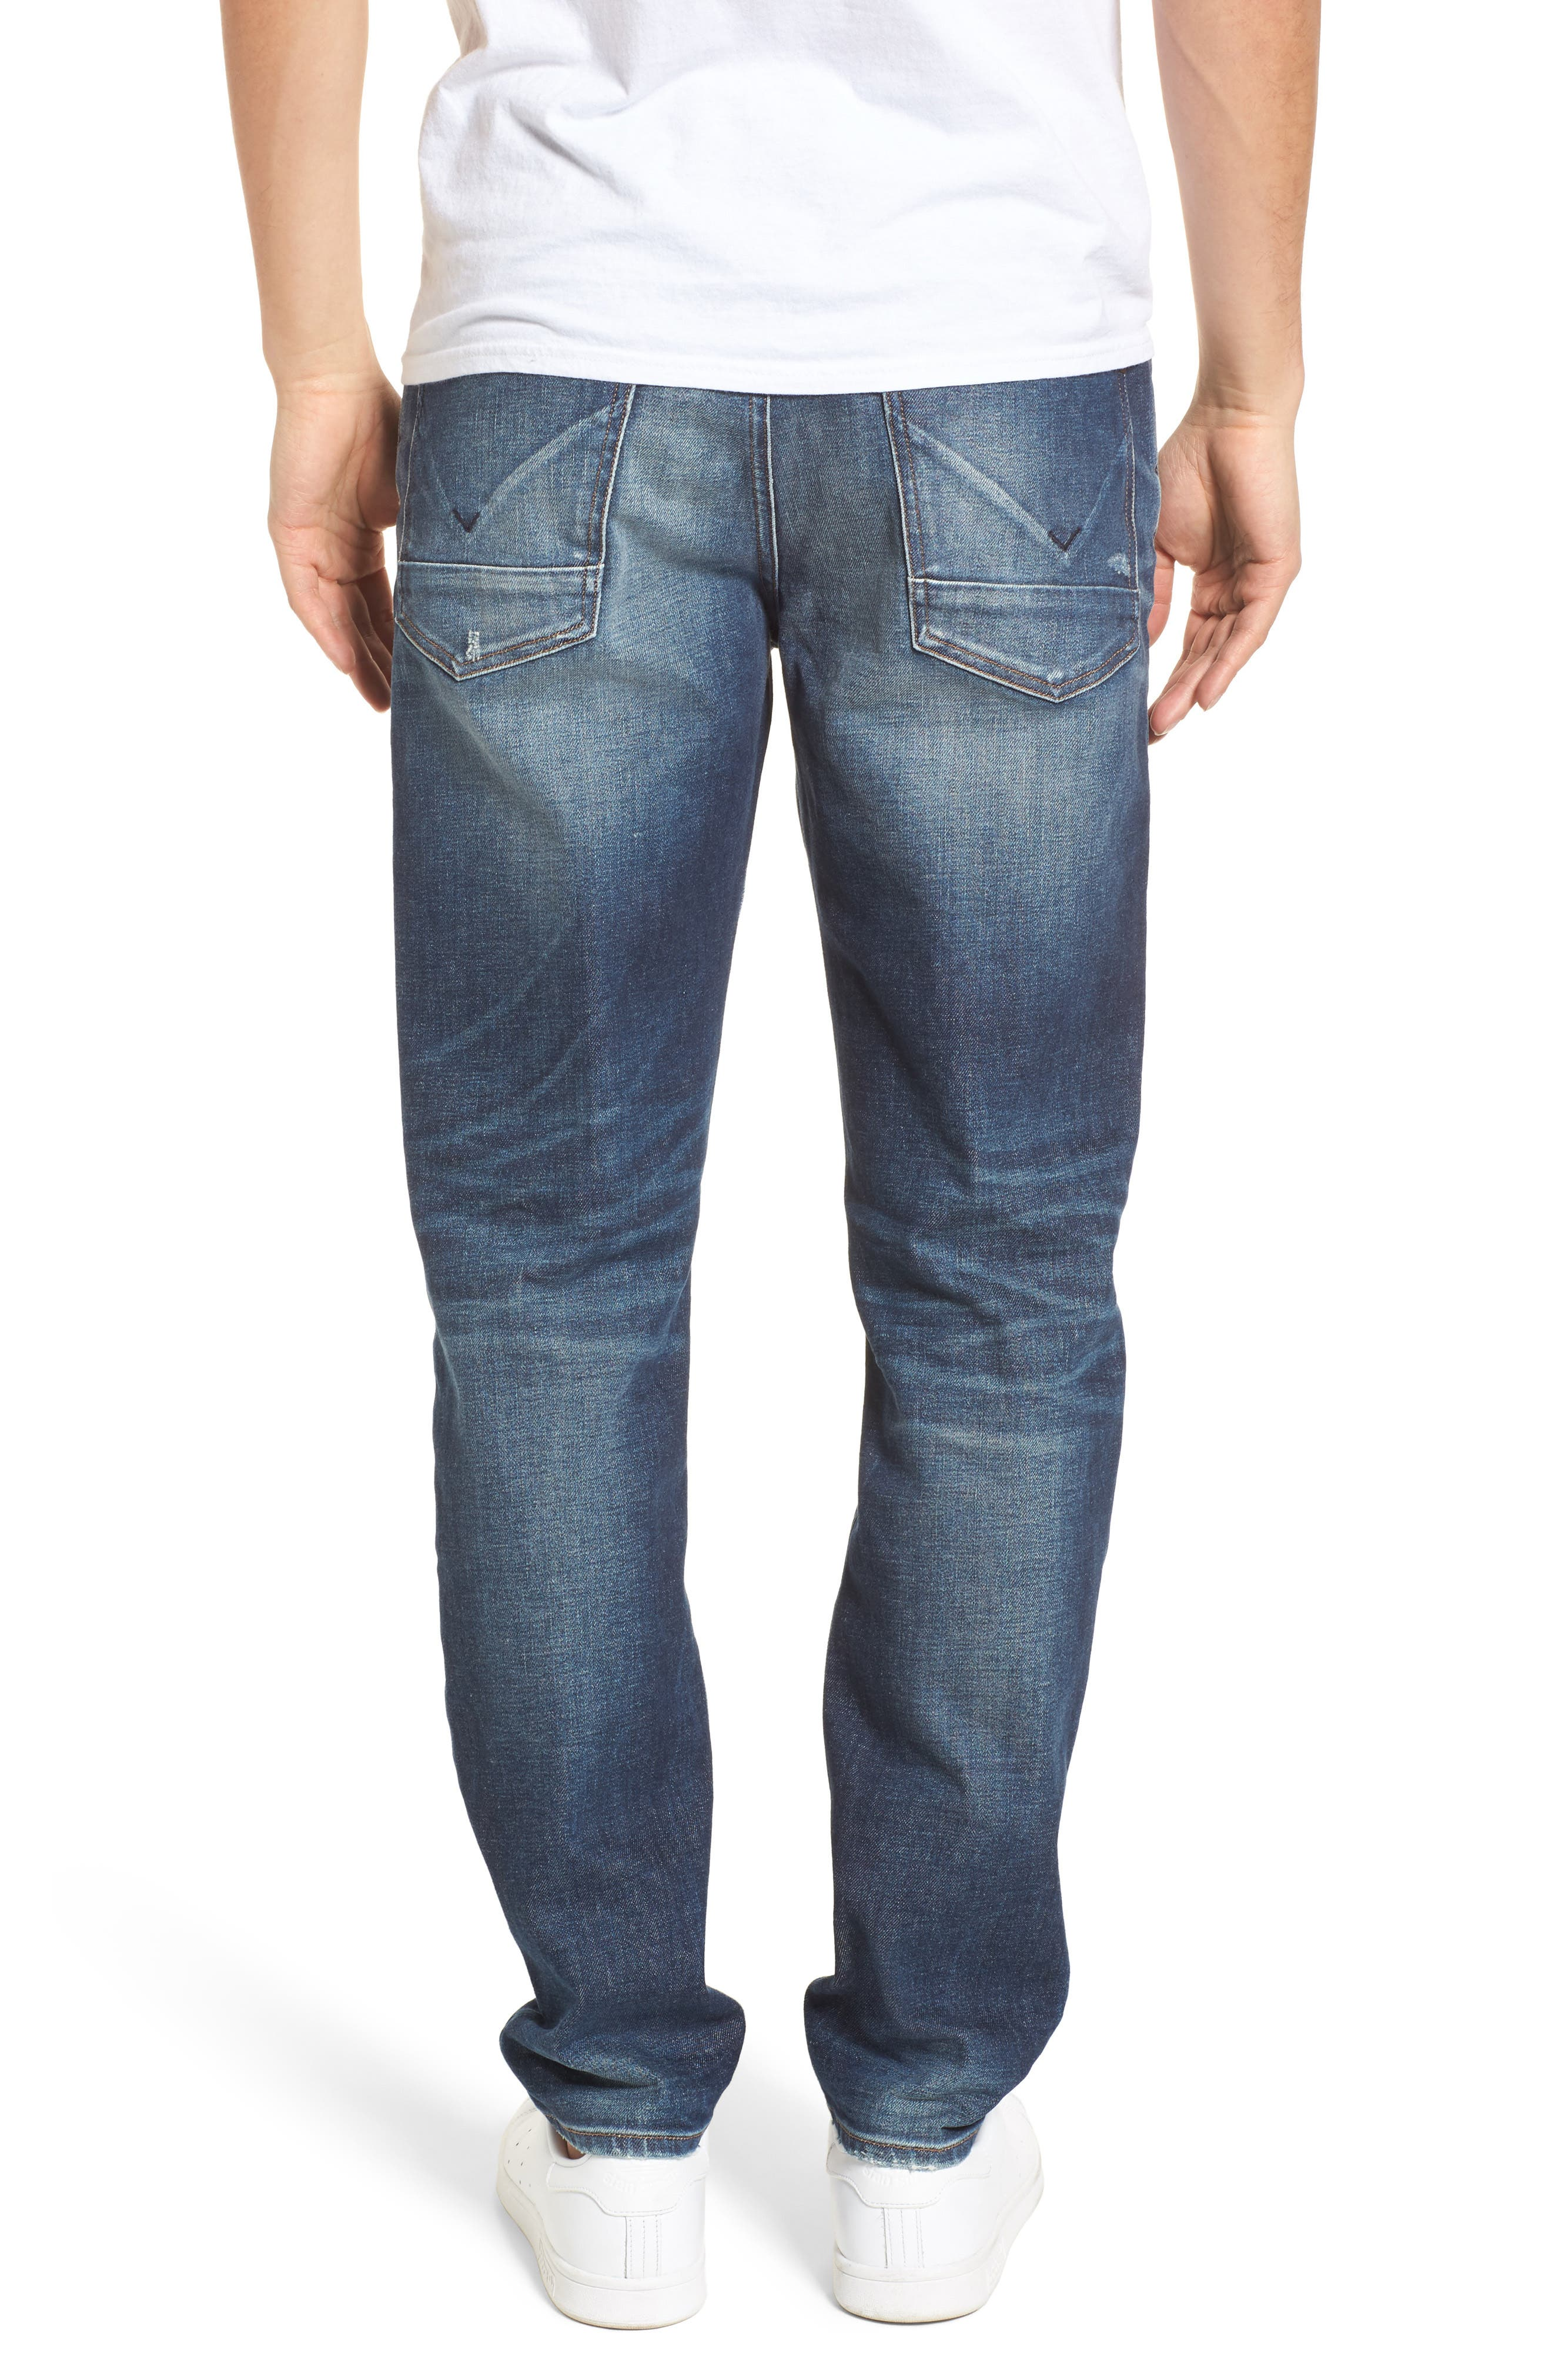 Sartor Slouchy Skinny Fit Jeans,                             Alternate thumbnail 2, color,                             427